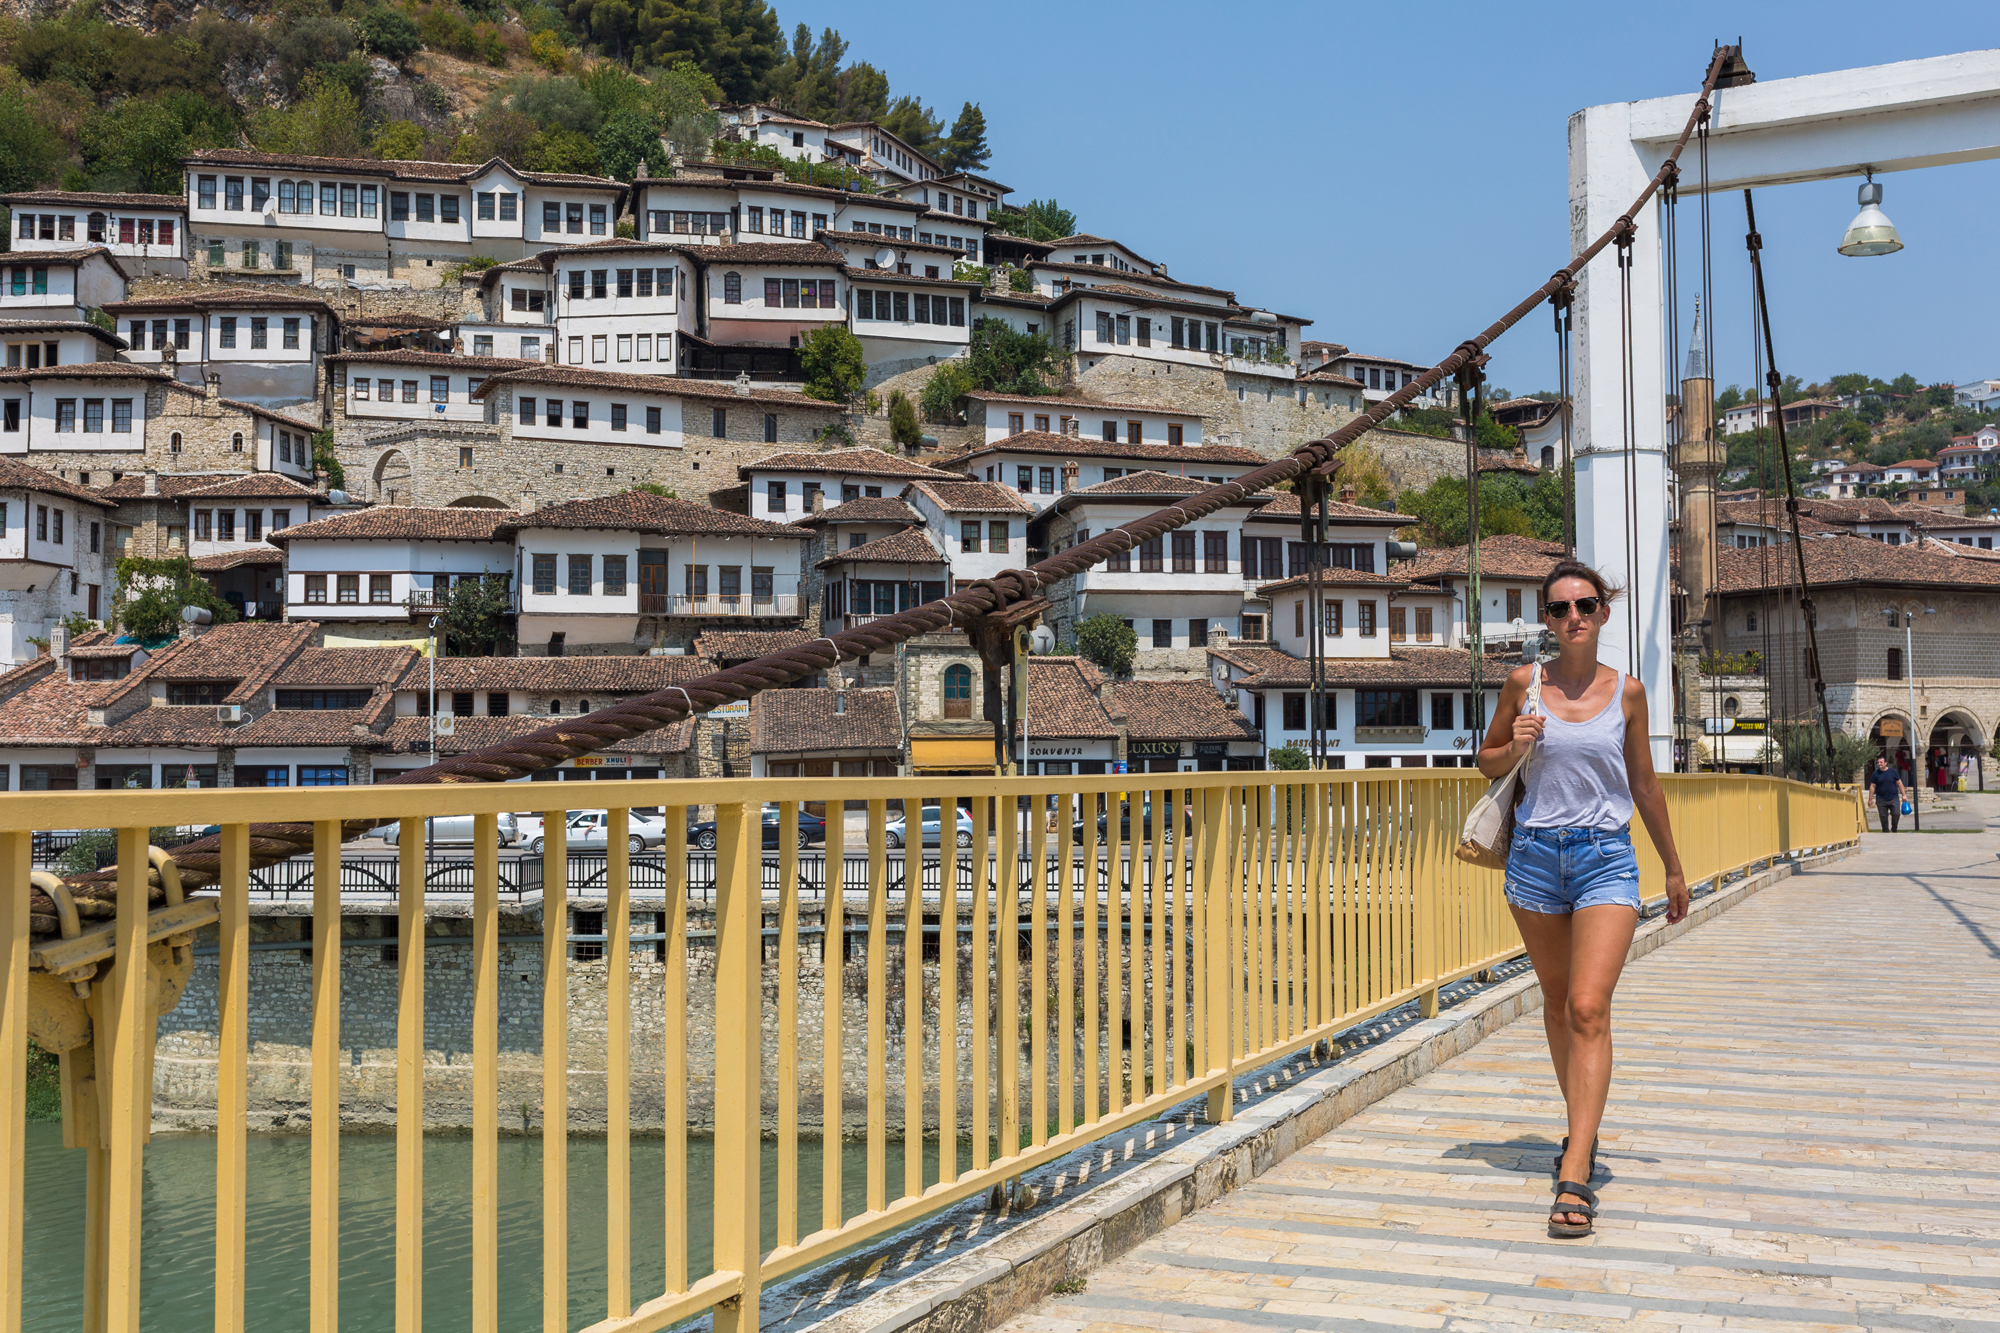 A girl walking across the bridge in Albania.